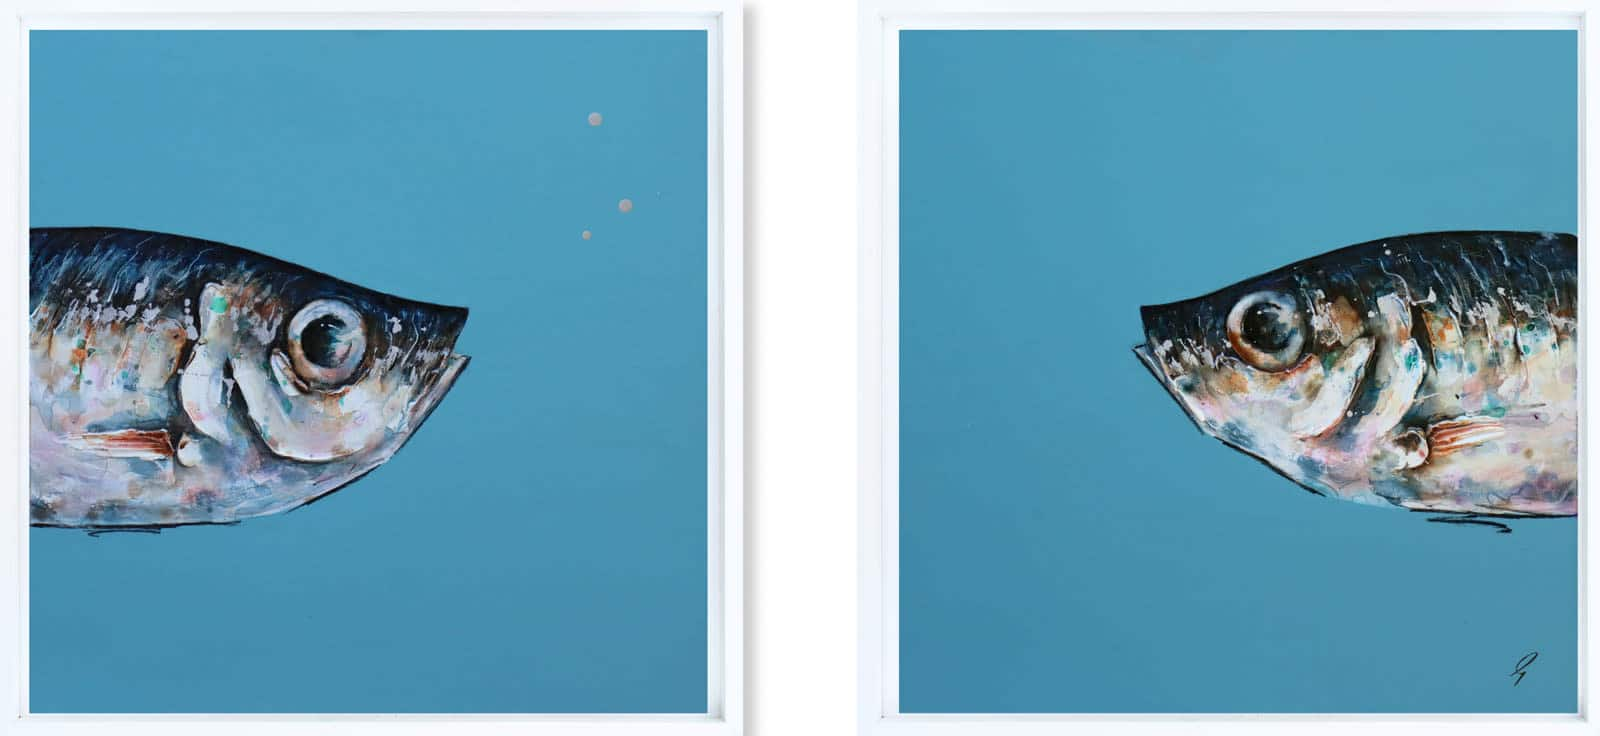 We Are The Same (Diptych), Giles Ward